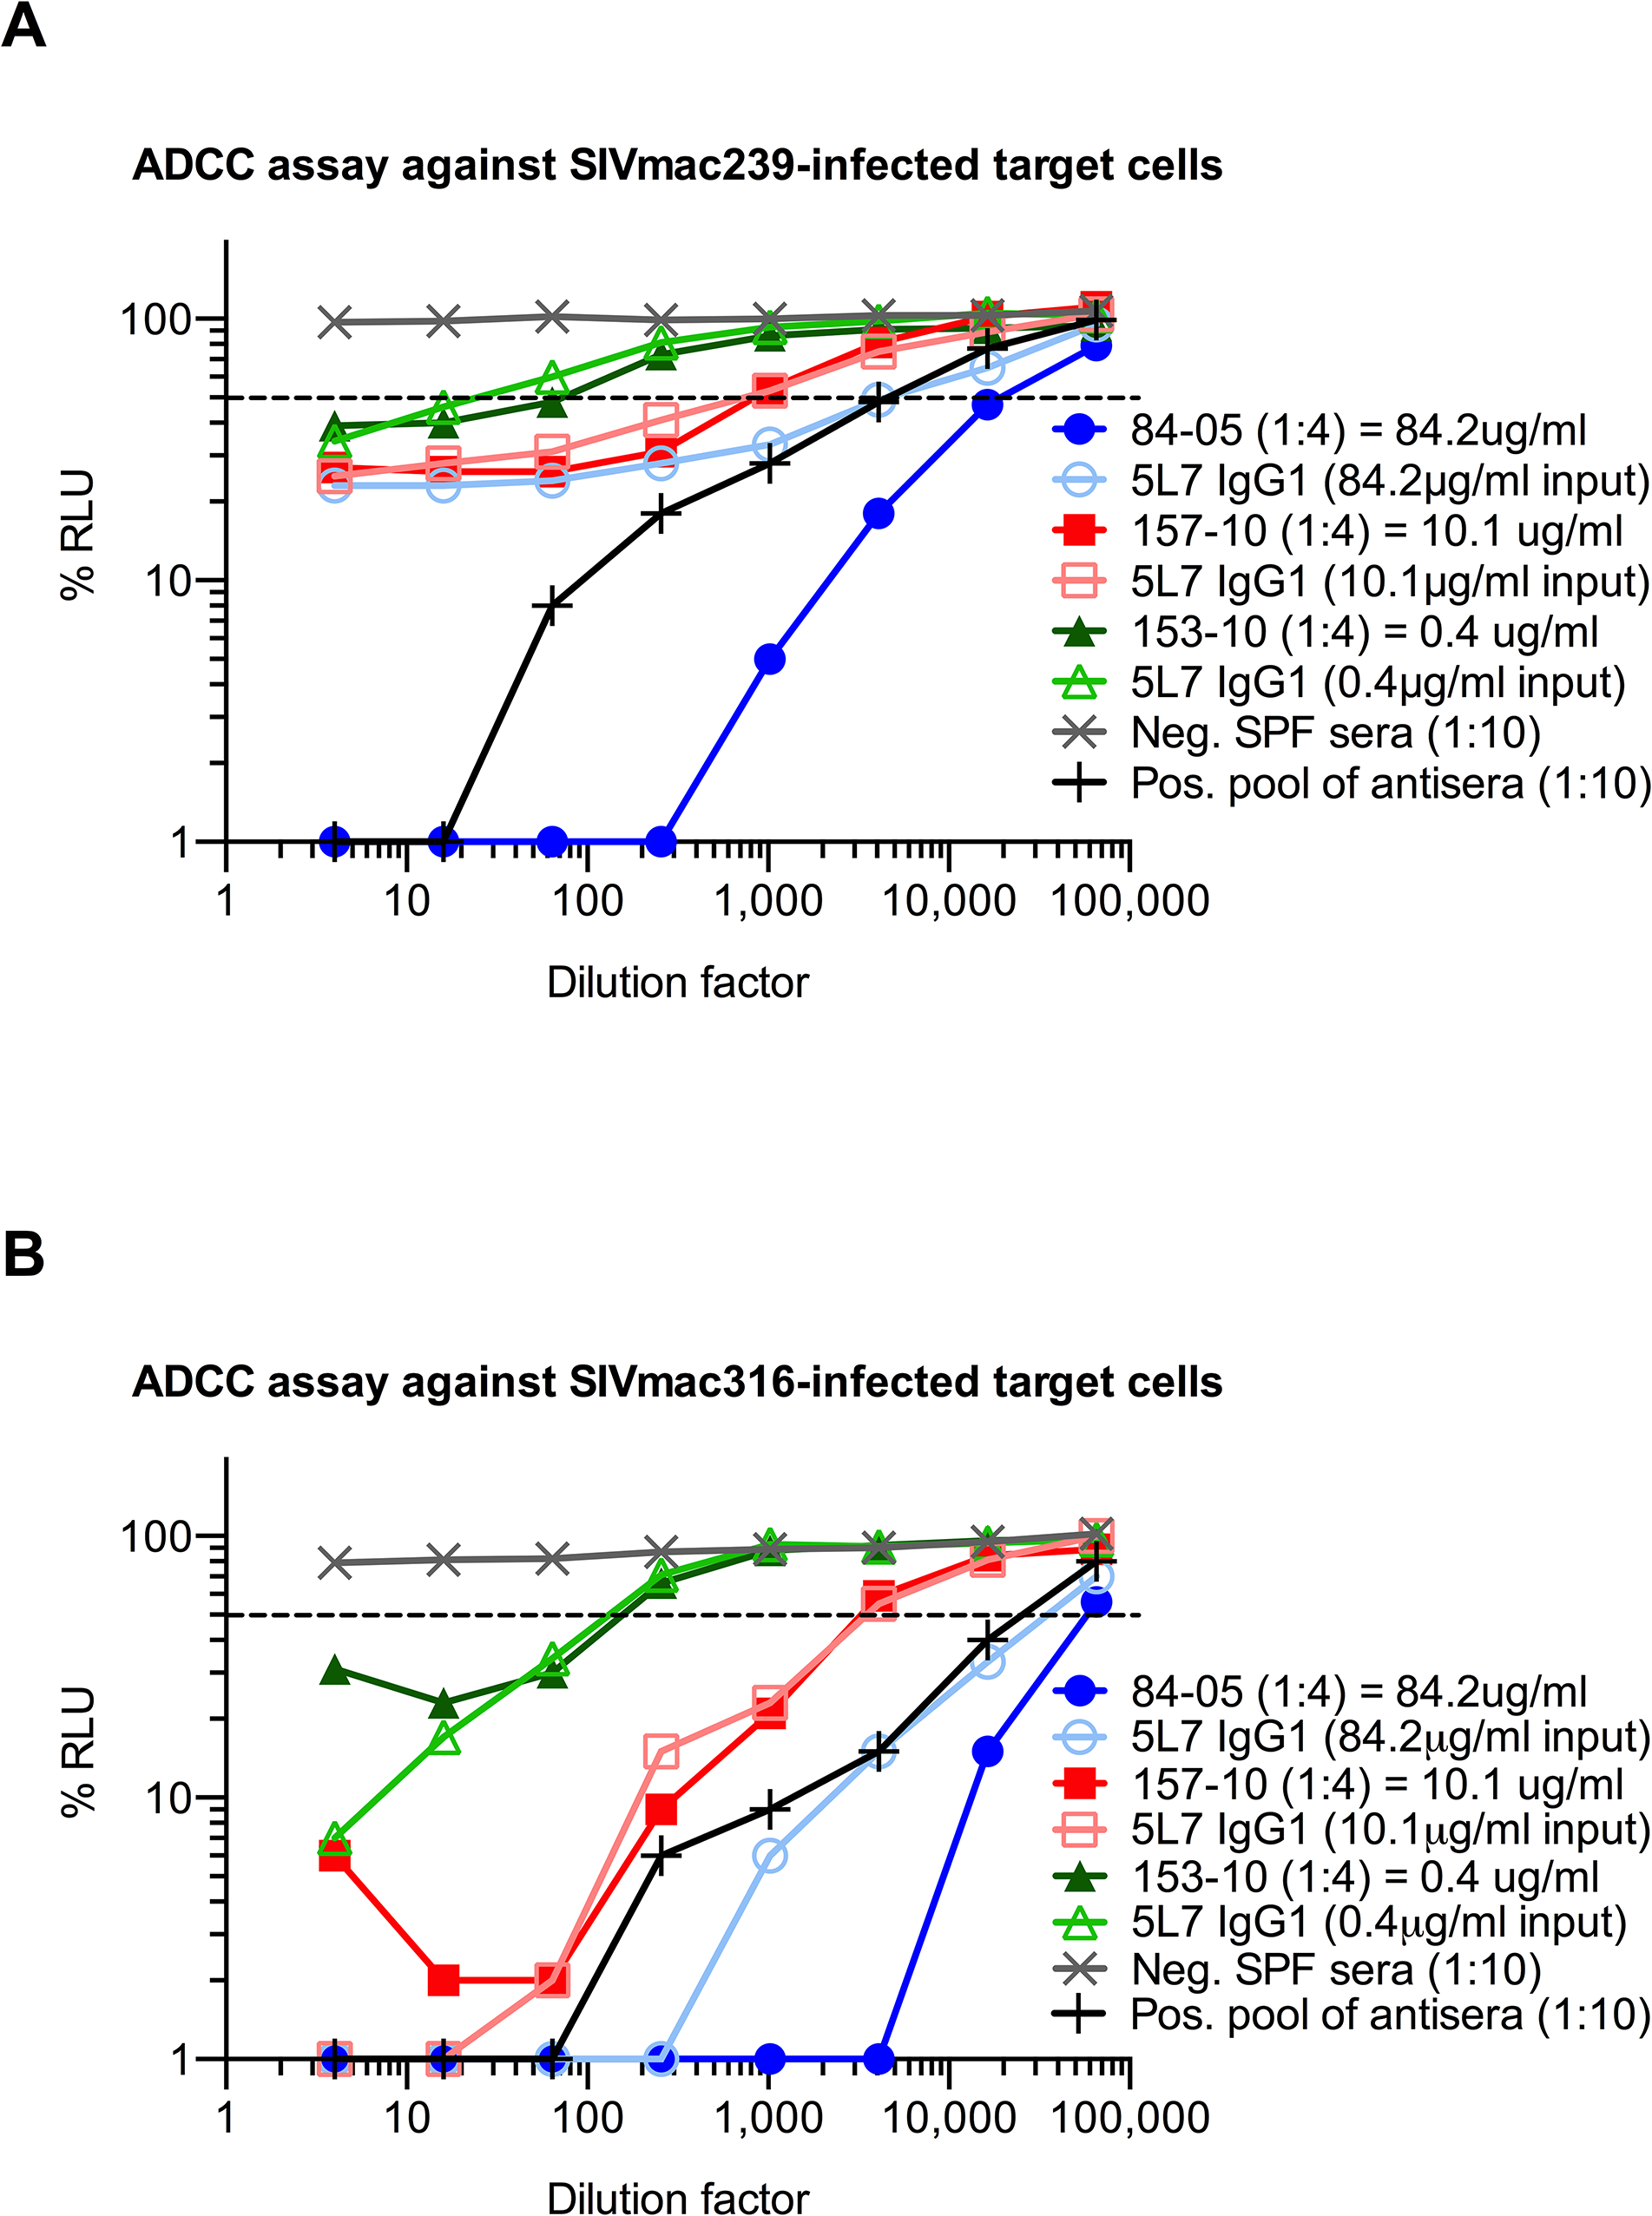 ADCC activity of purified proteins and sera against SIV-infected target cells <i>in vitro</i>.